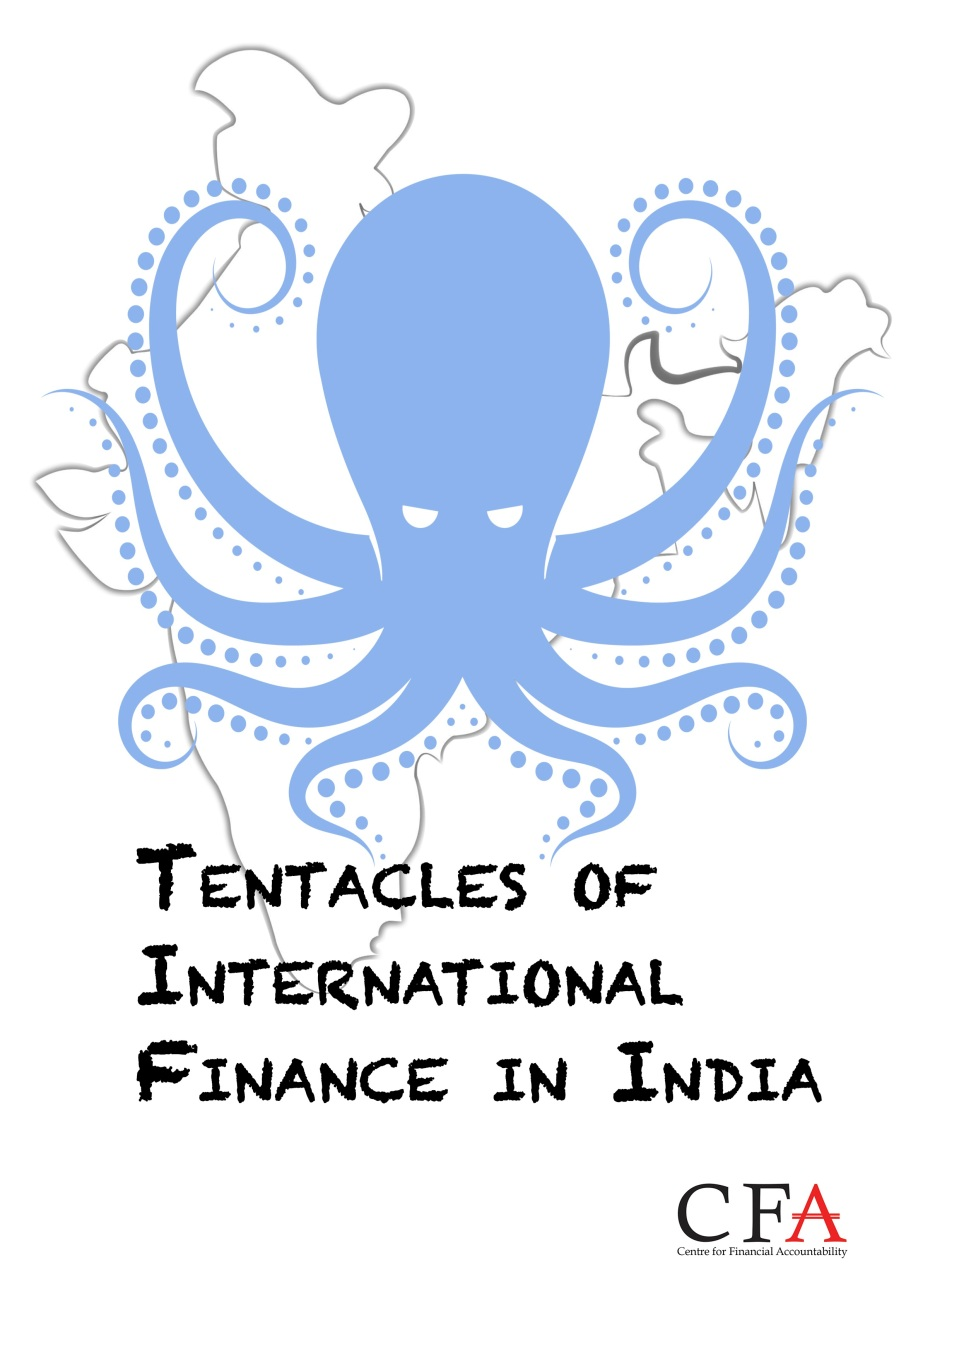 Tentacles-of-International-Finance-in-India